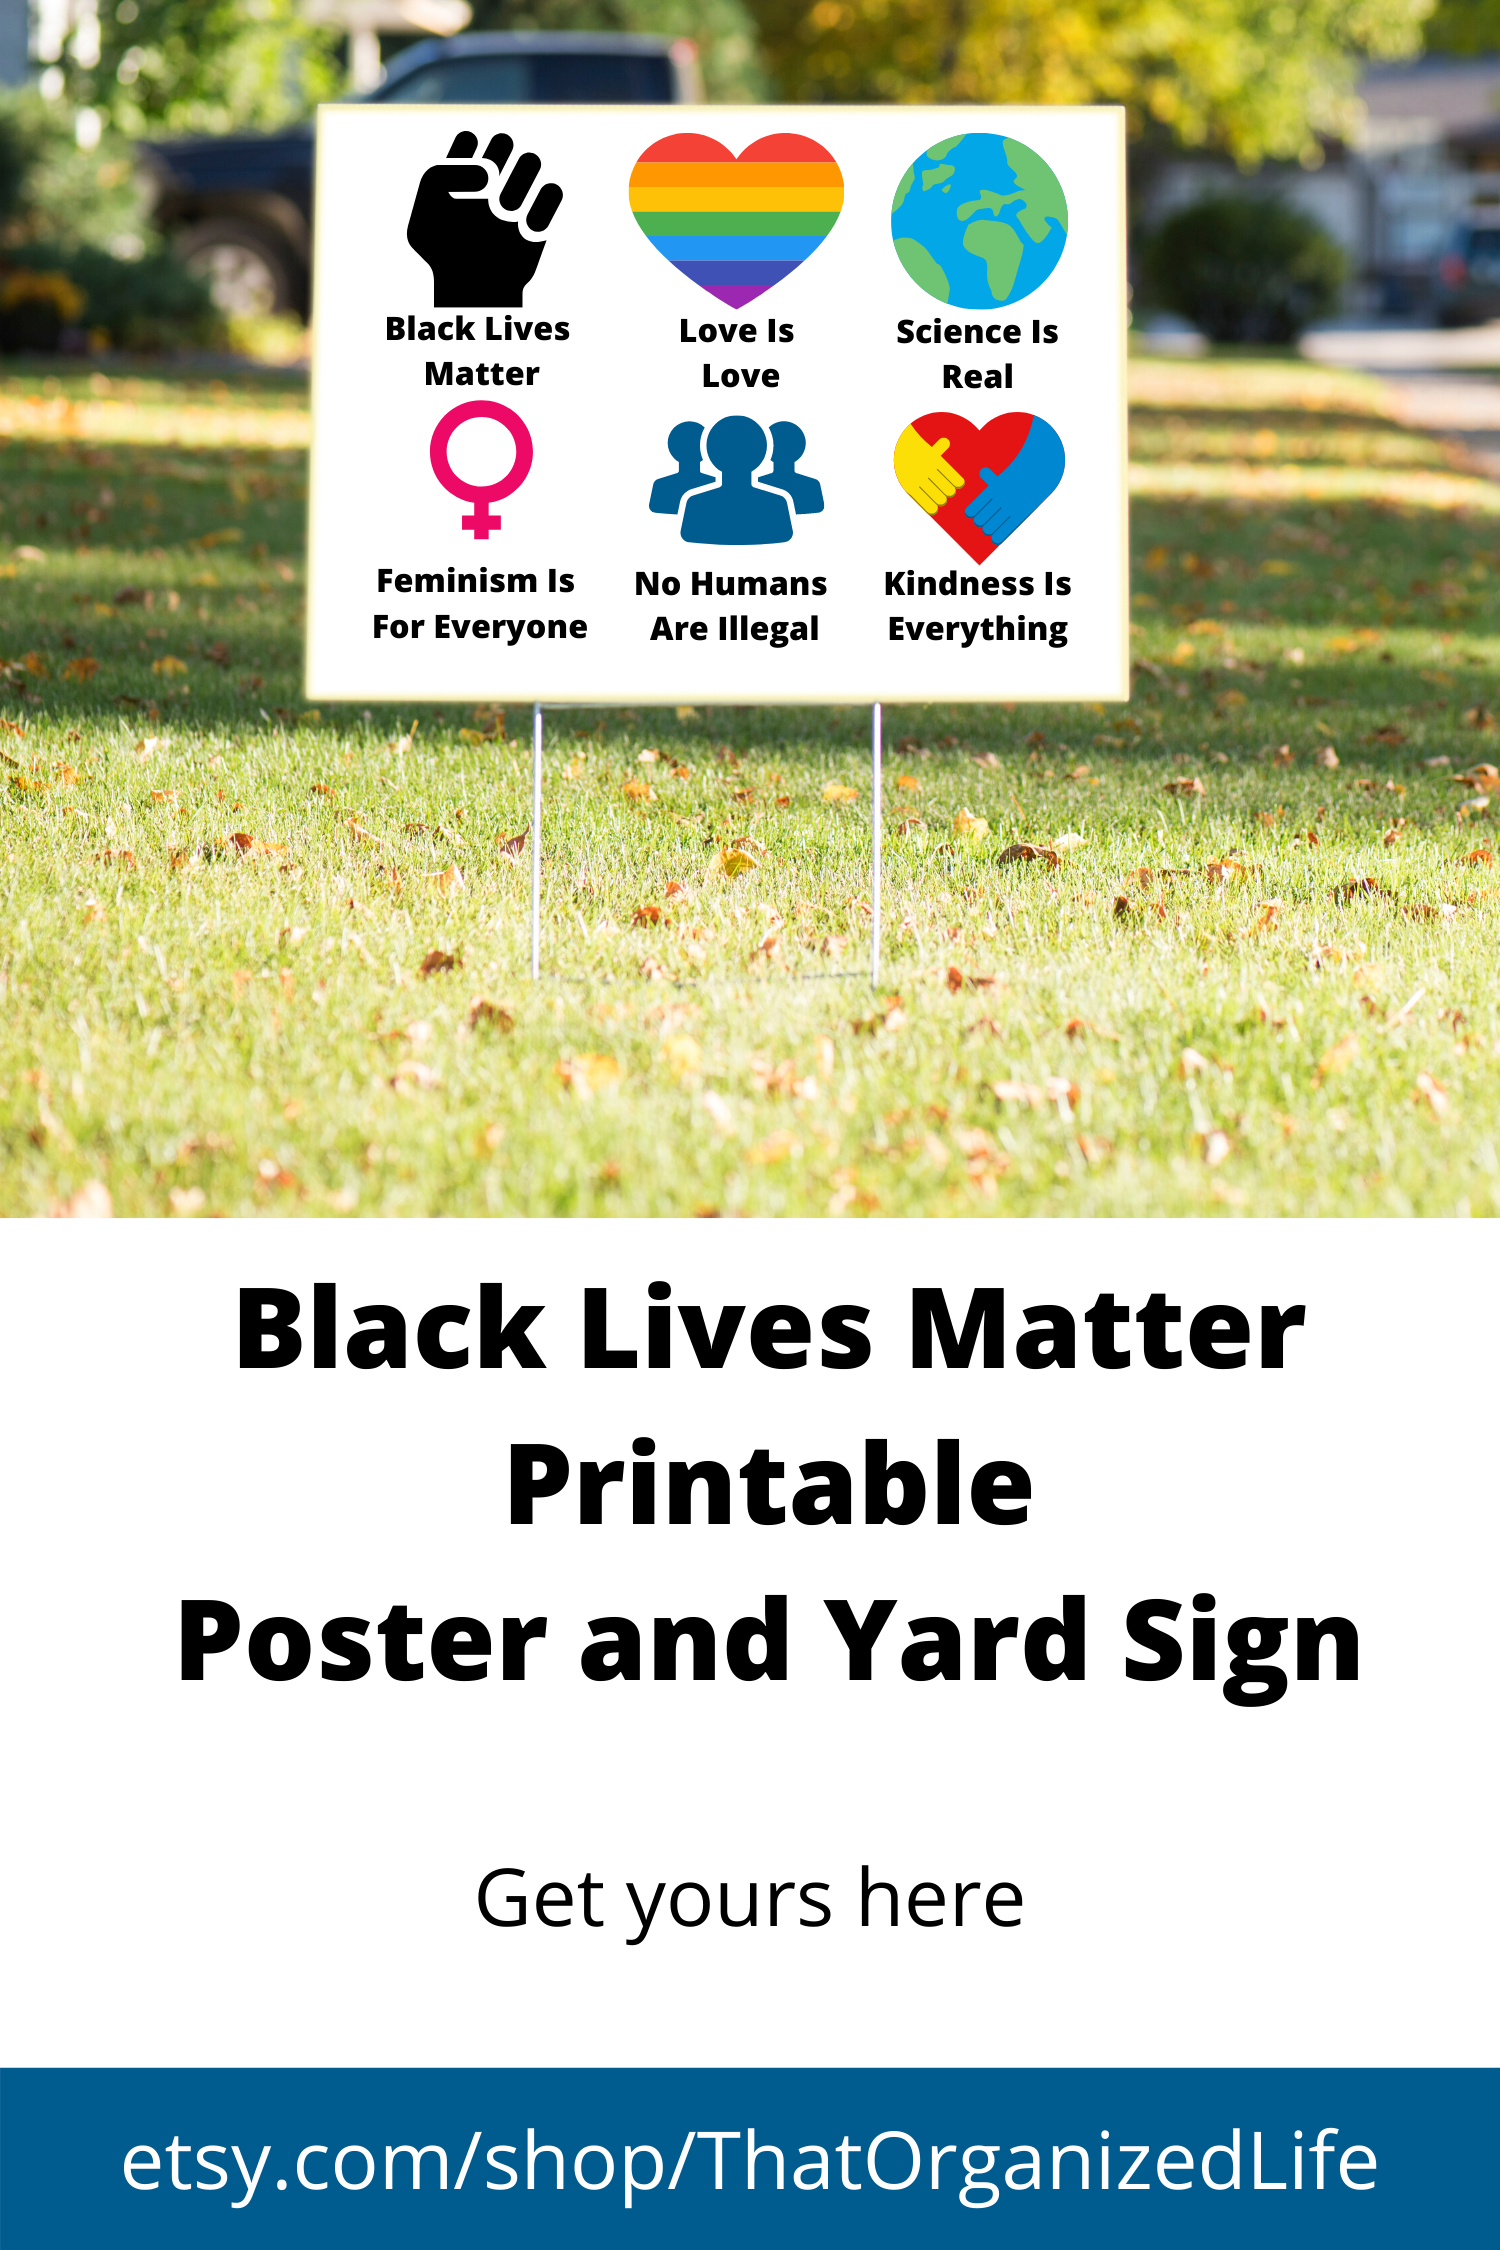 Black Lives Matter Yard Sign Black Lives Matter Lives Matter Black Lives